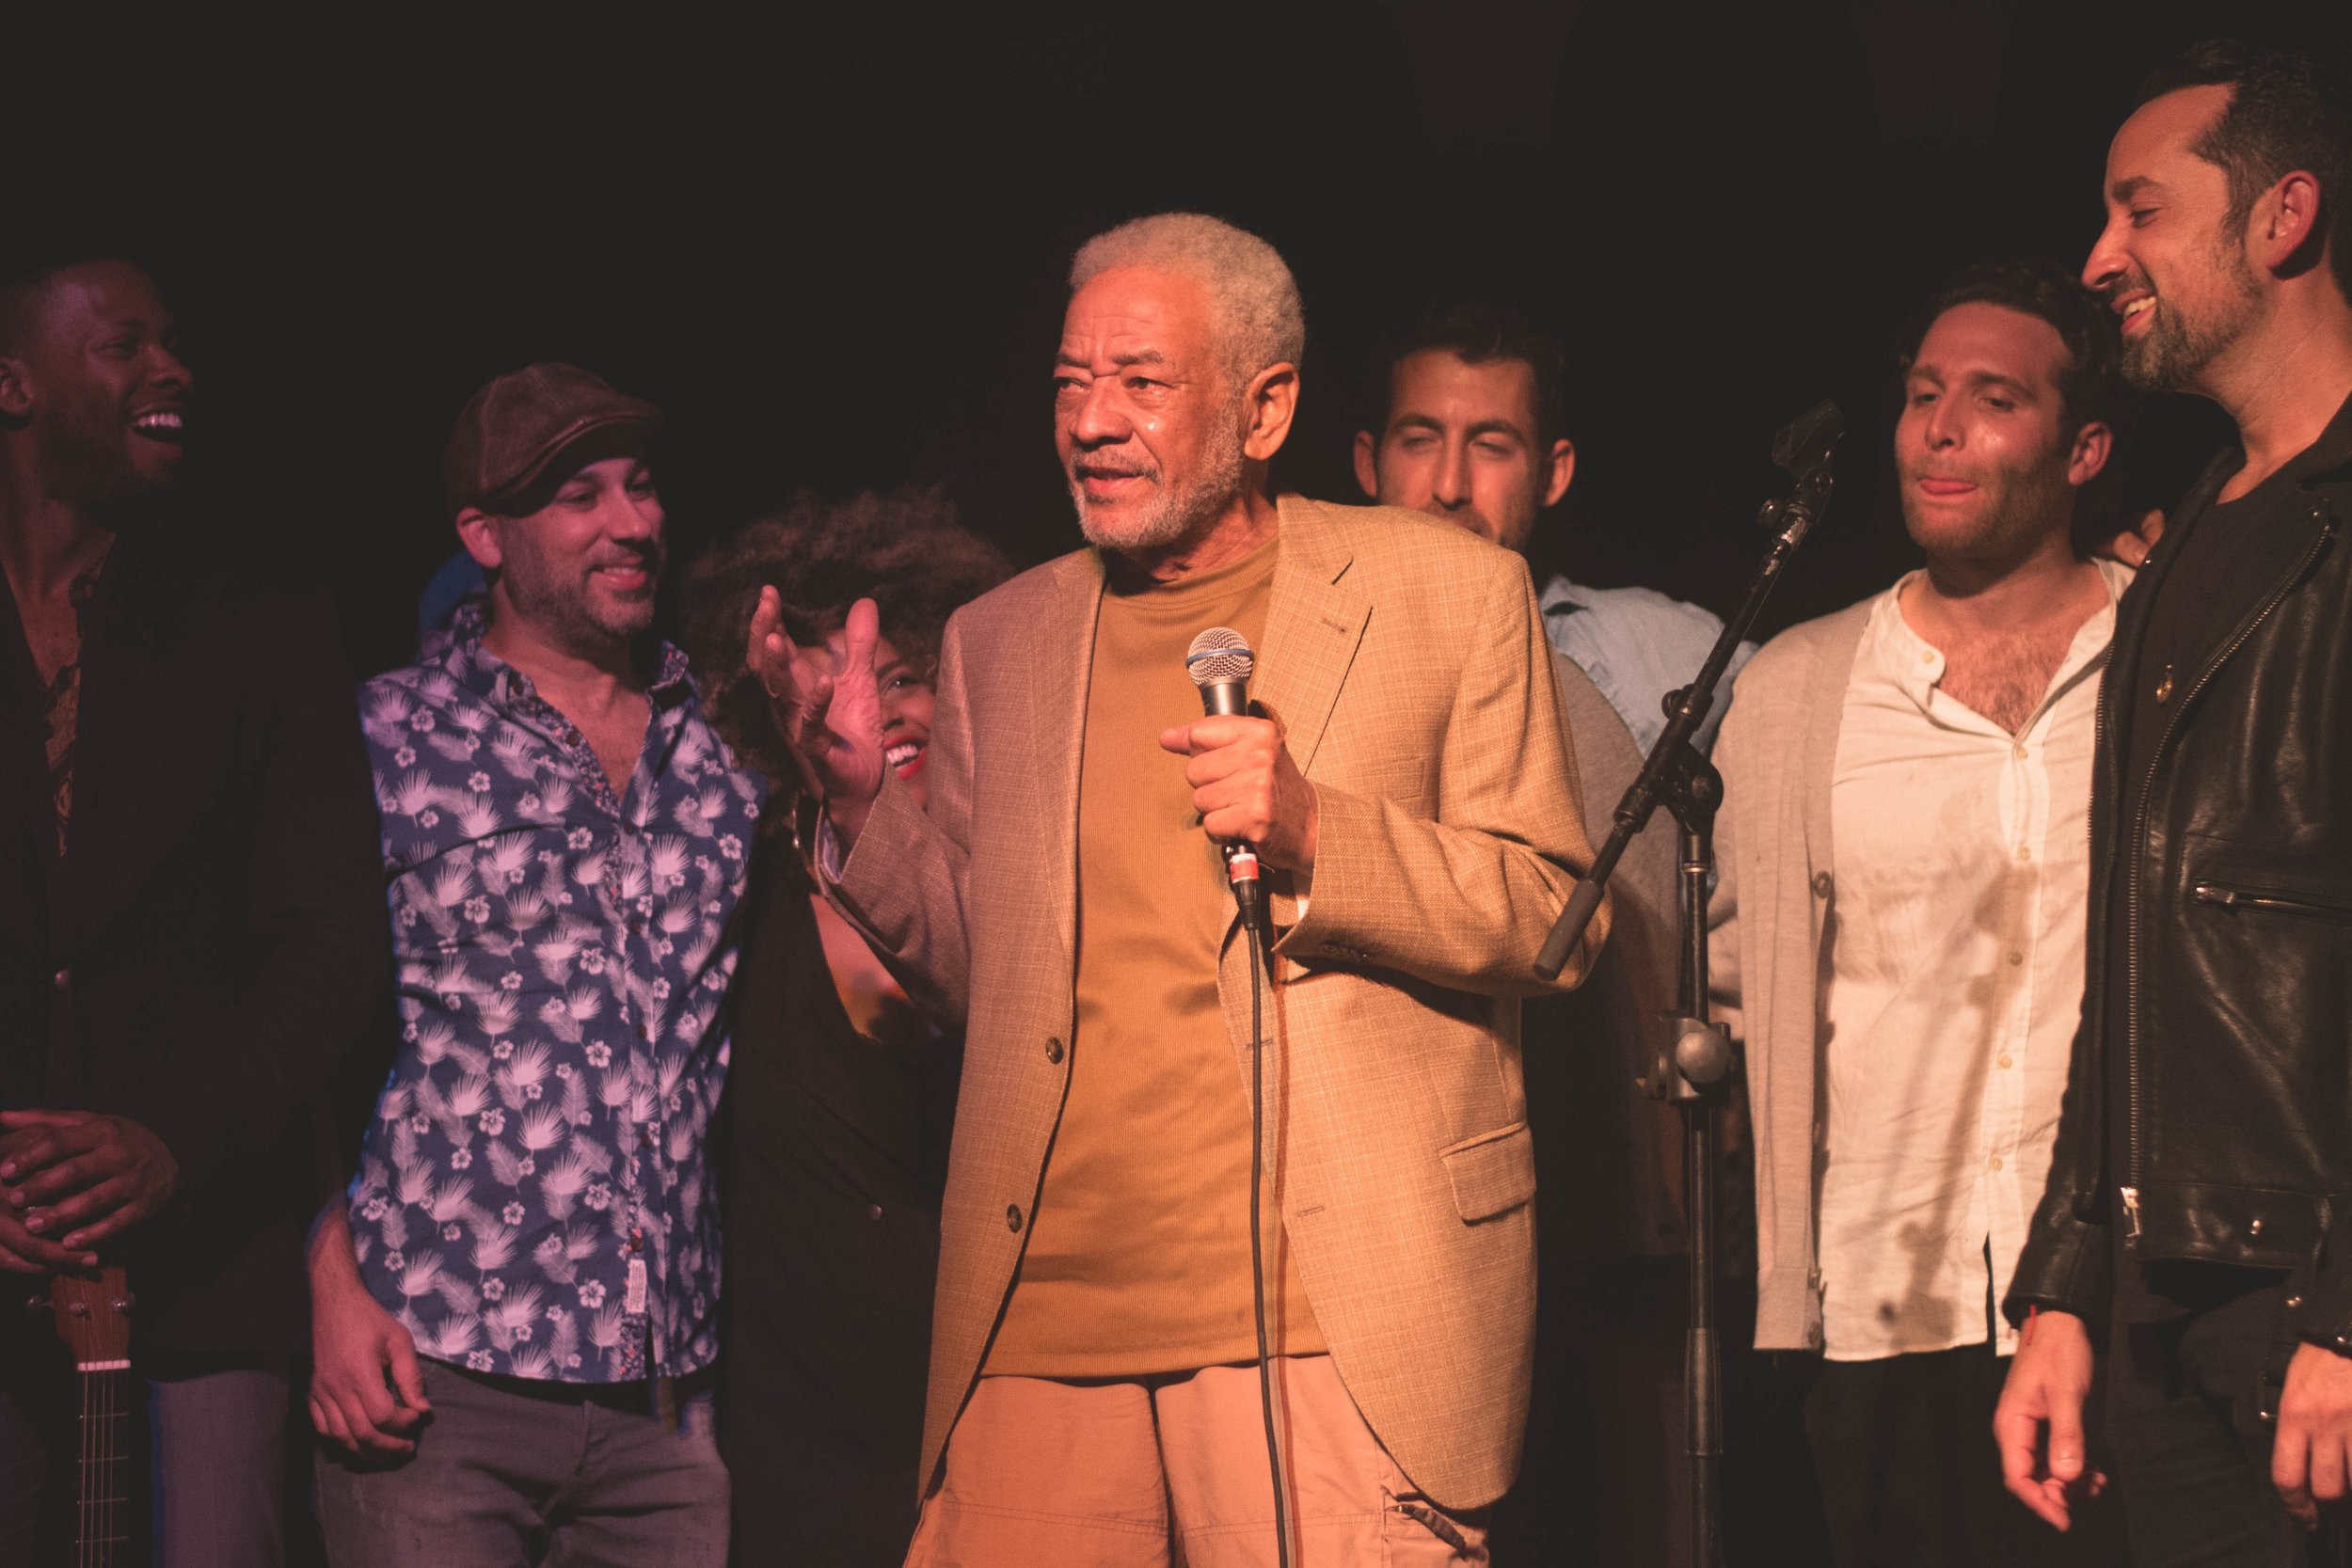 On Stage With Bill Withers, 2018